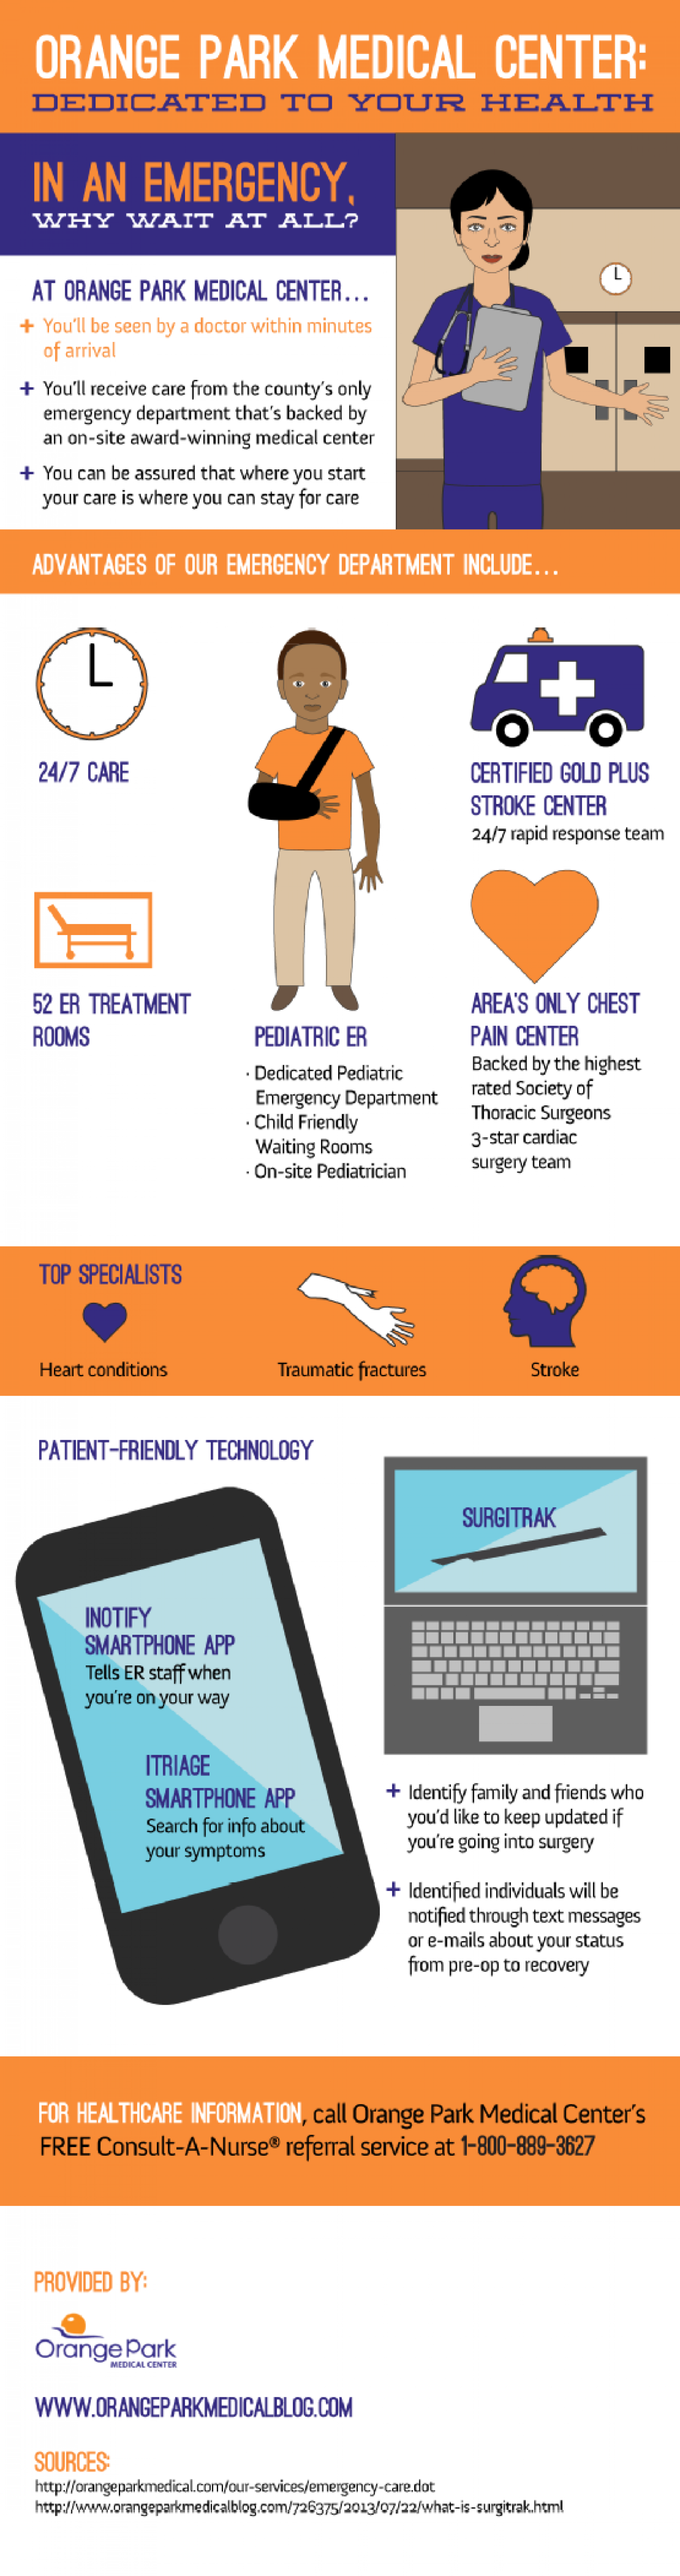 Orange Park Medical Center: Dedicated to Your Health  Infographic